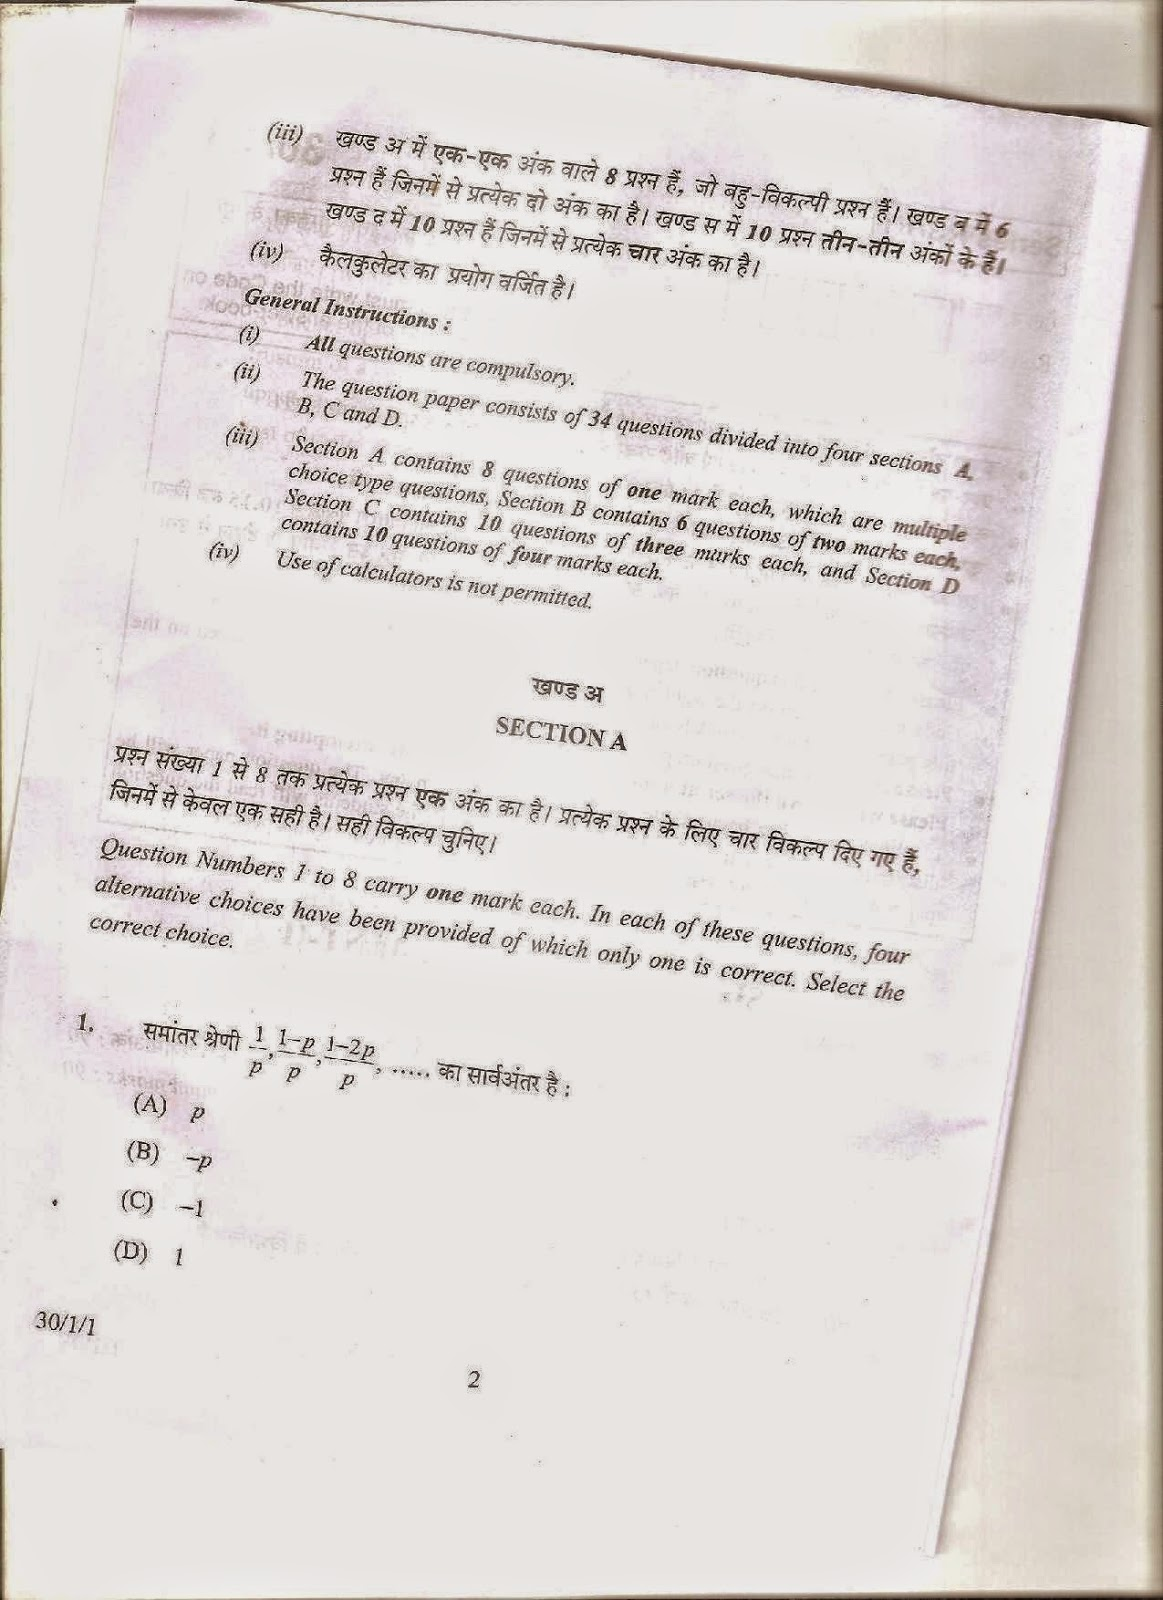 cbse class 10th mathematics question paper 2013